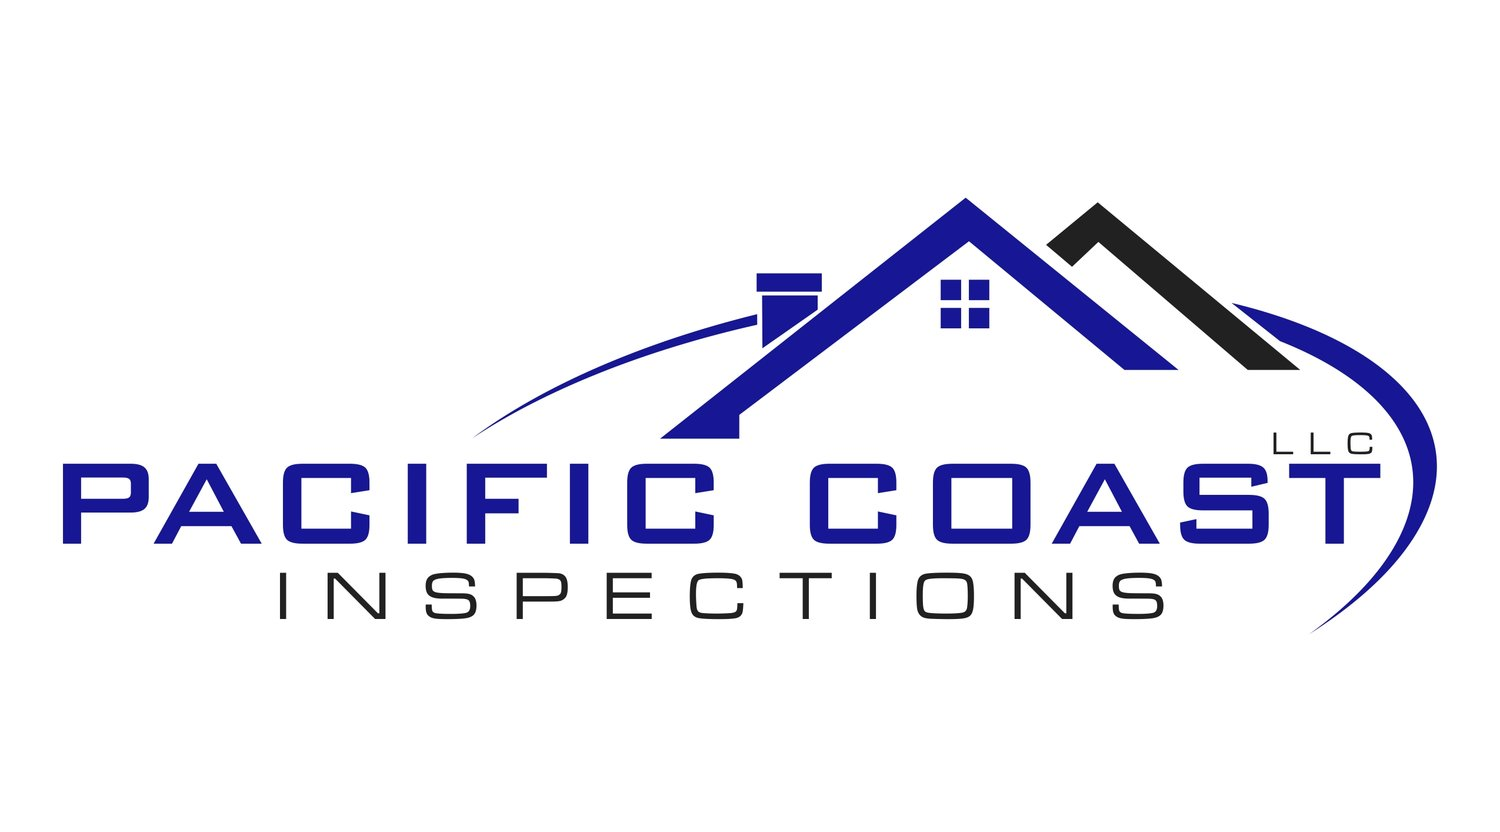 Pacific Coast Inspections LLC